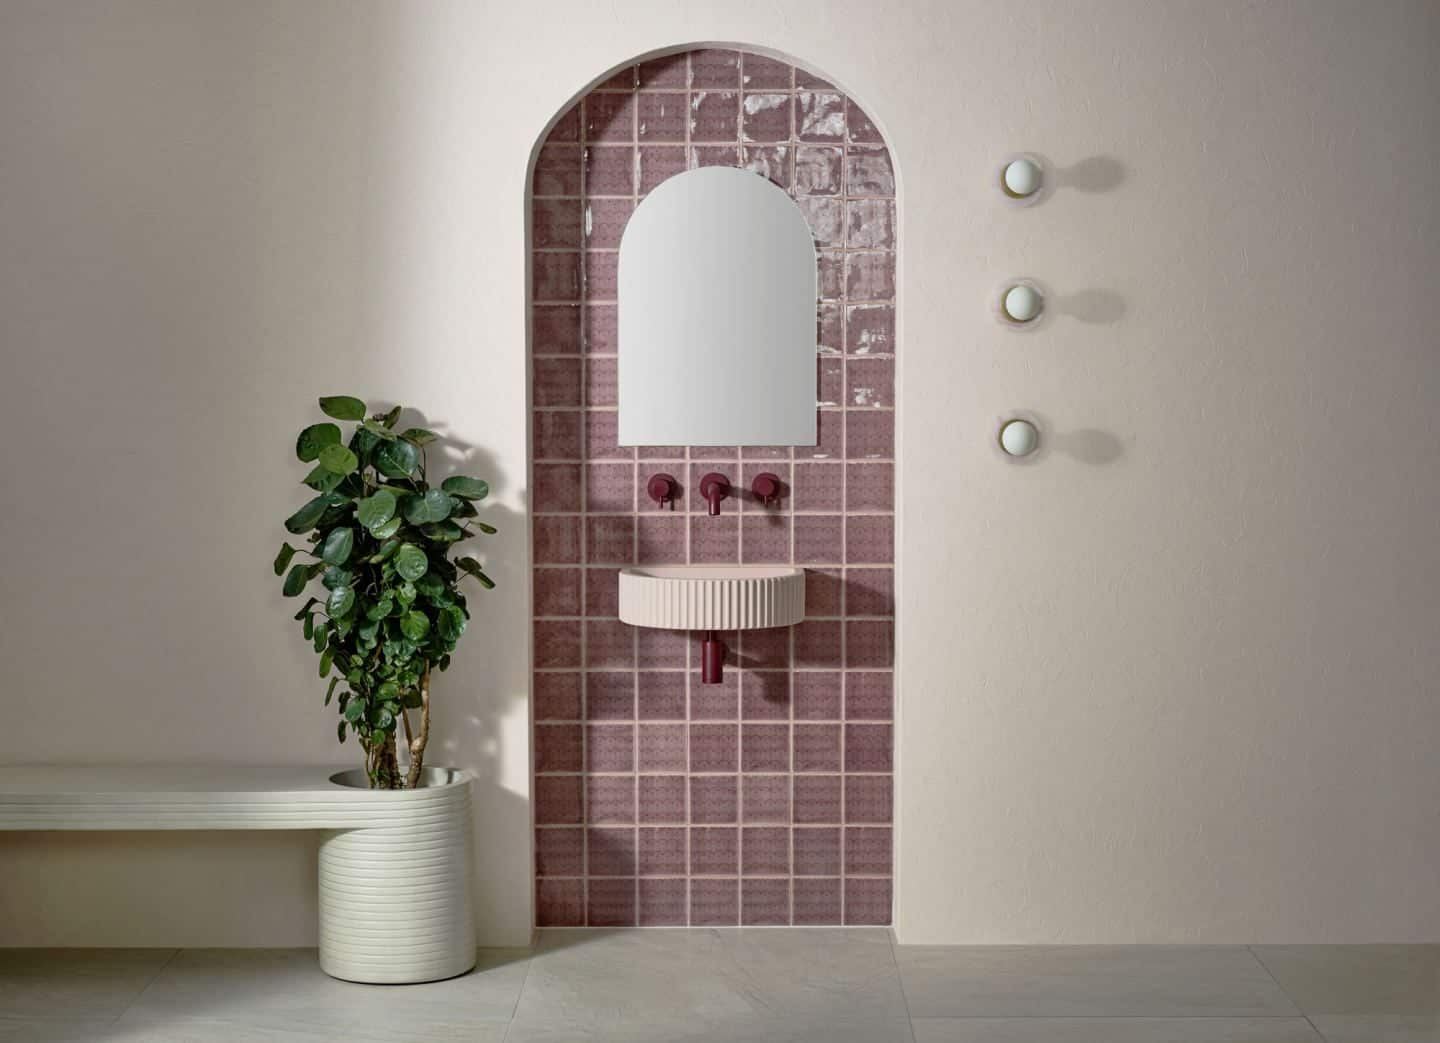 Original Style and 2LG Deco Tayberry Tile of the Year 2020 in a beautiful blush bathroom setting